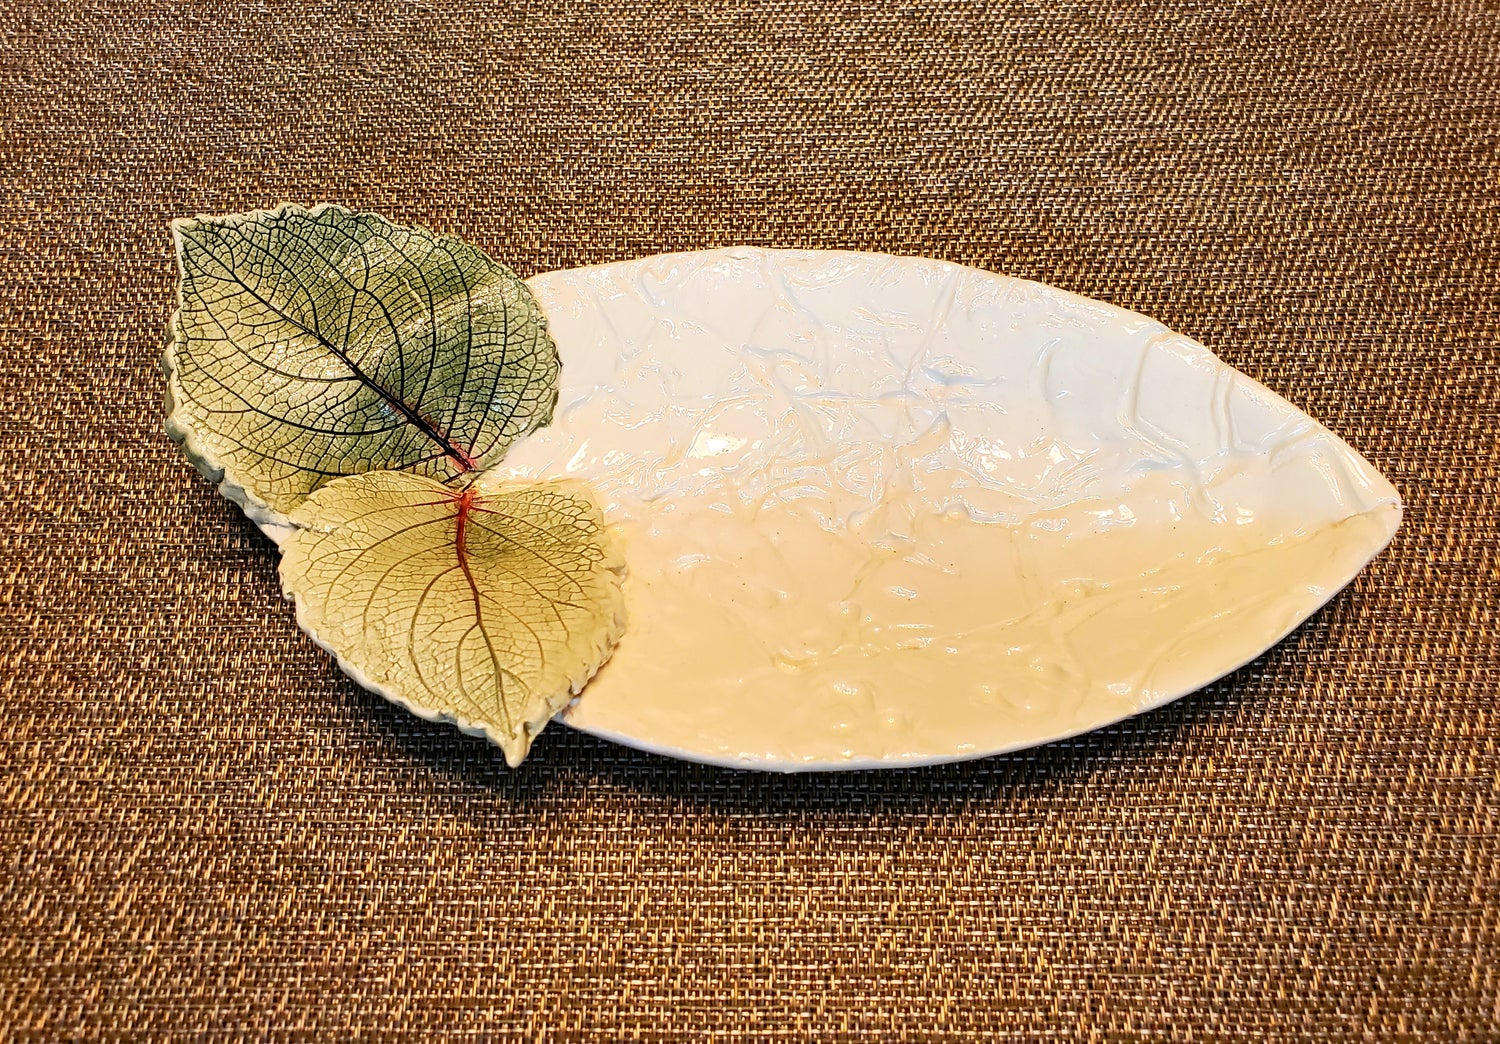 Image of Ceramic Oval Dish Highlighted with Two Ceramic Leaves